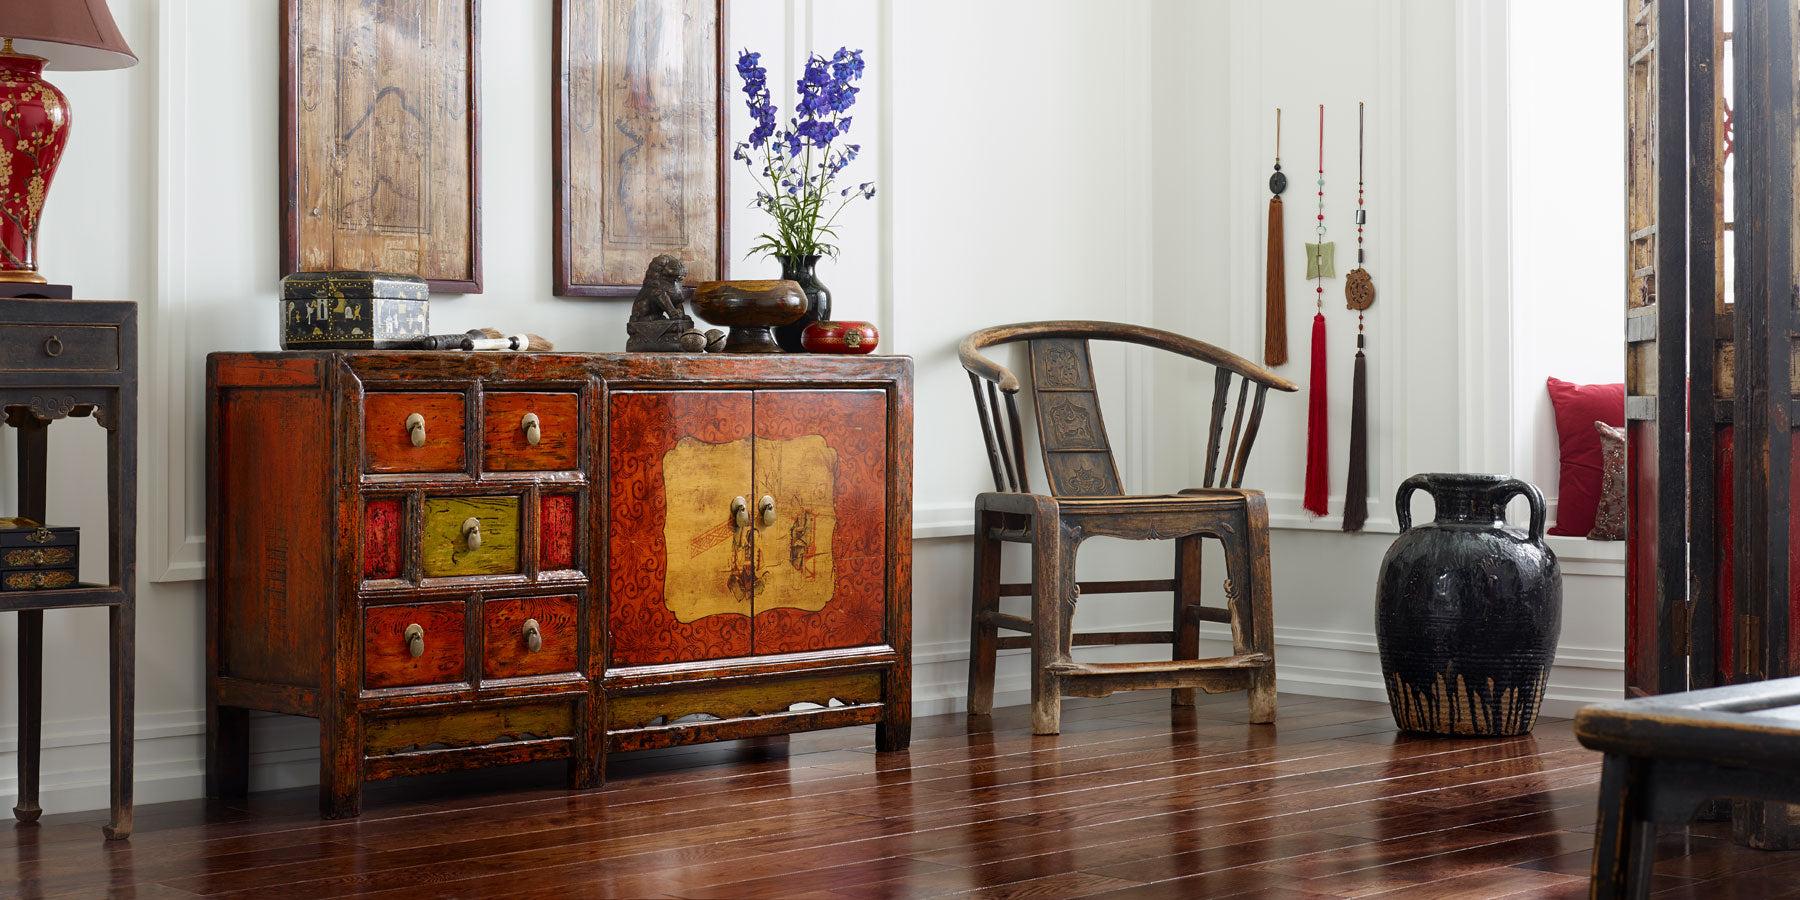 NEW! China Seasons, our latest handcrafted furniture range, now online